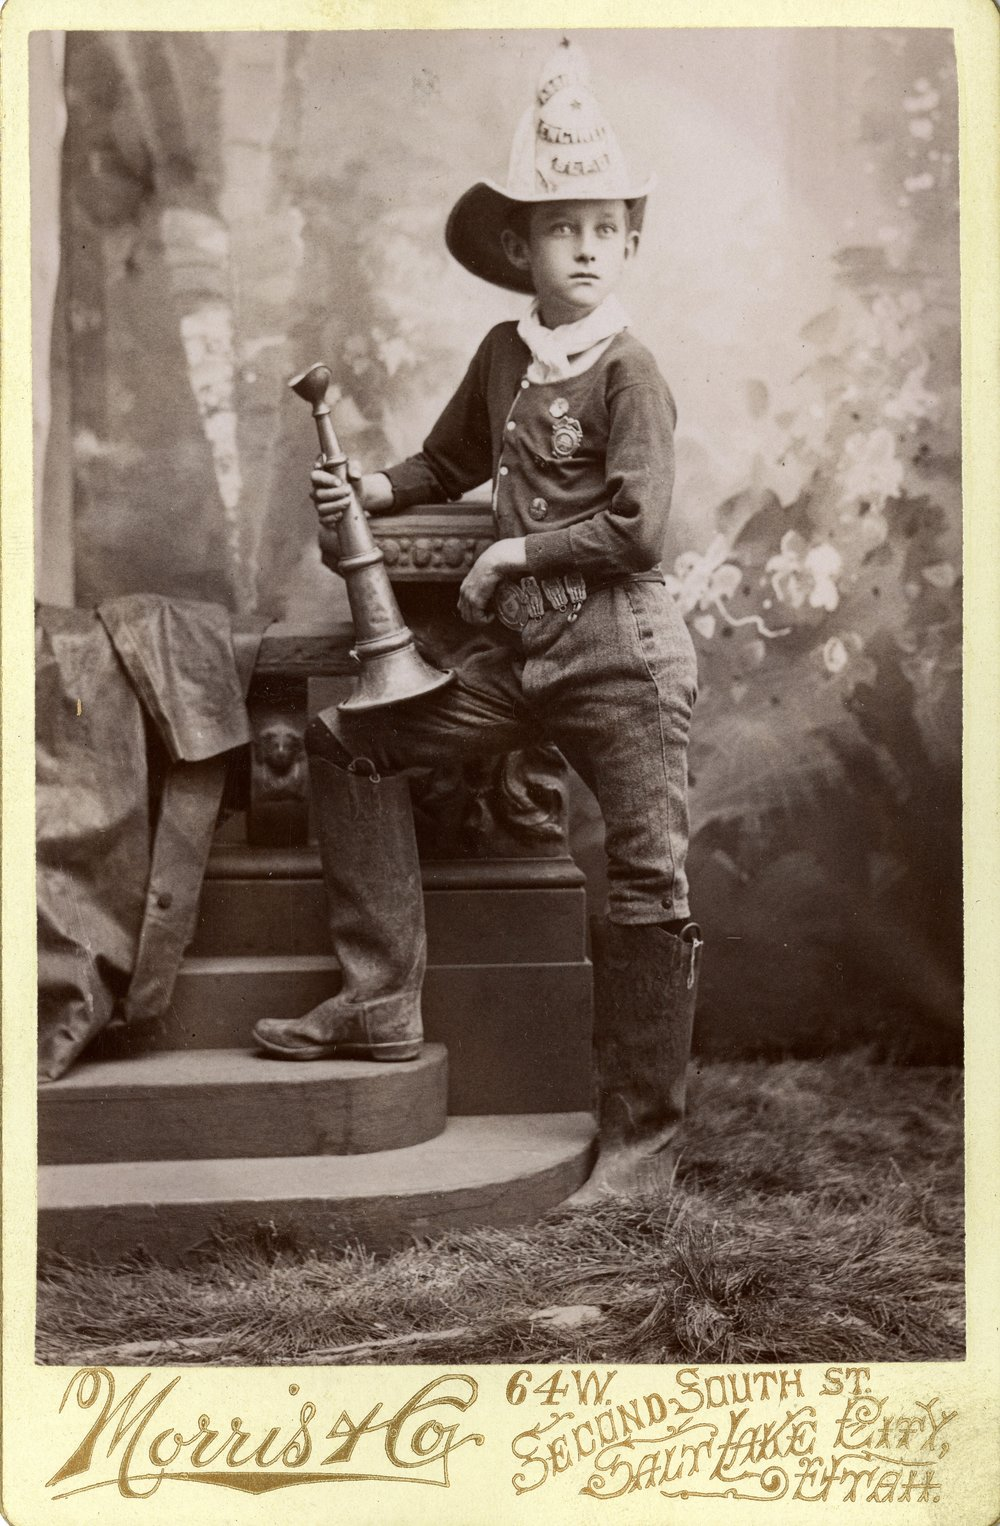 UNIDENTIFIED BOY IN FIRE FIGHTER UNIFORM (SERIES 23526). IMAGE COURTESY OF THE UTAH STATE ARCHIVES AND RECORDS SERVICE.